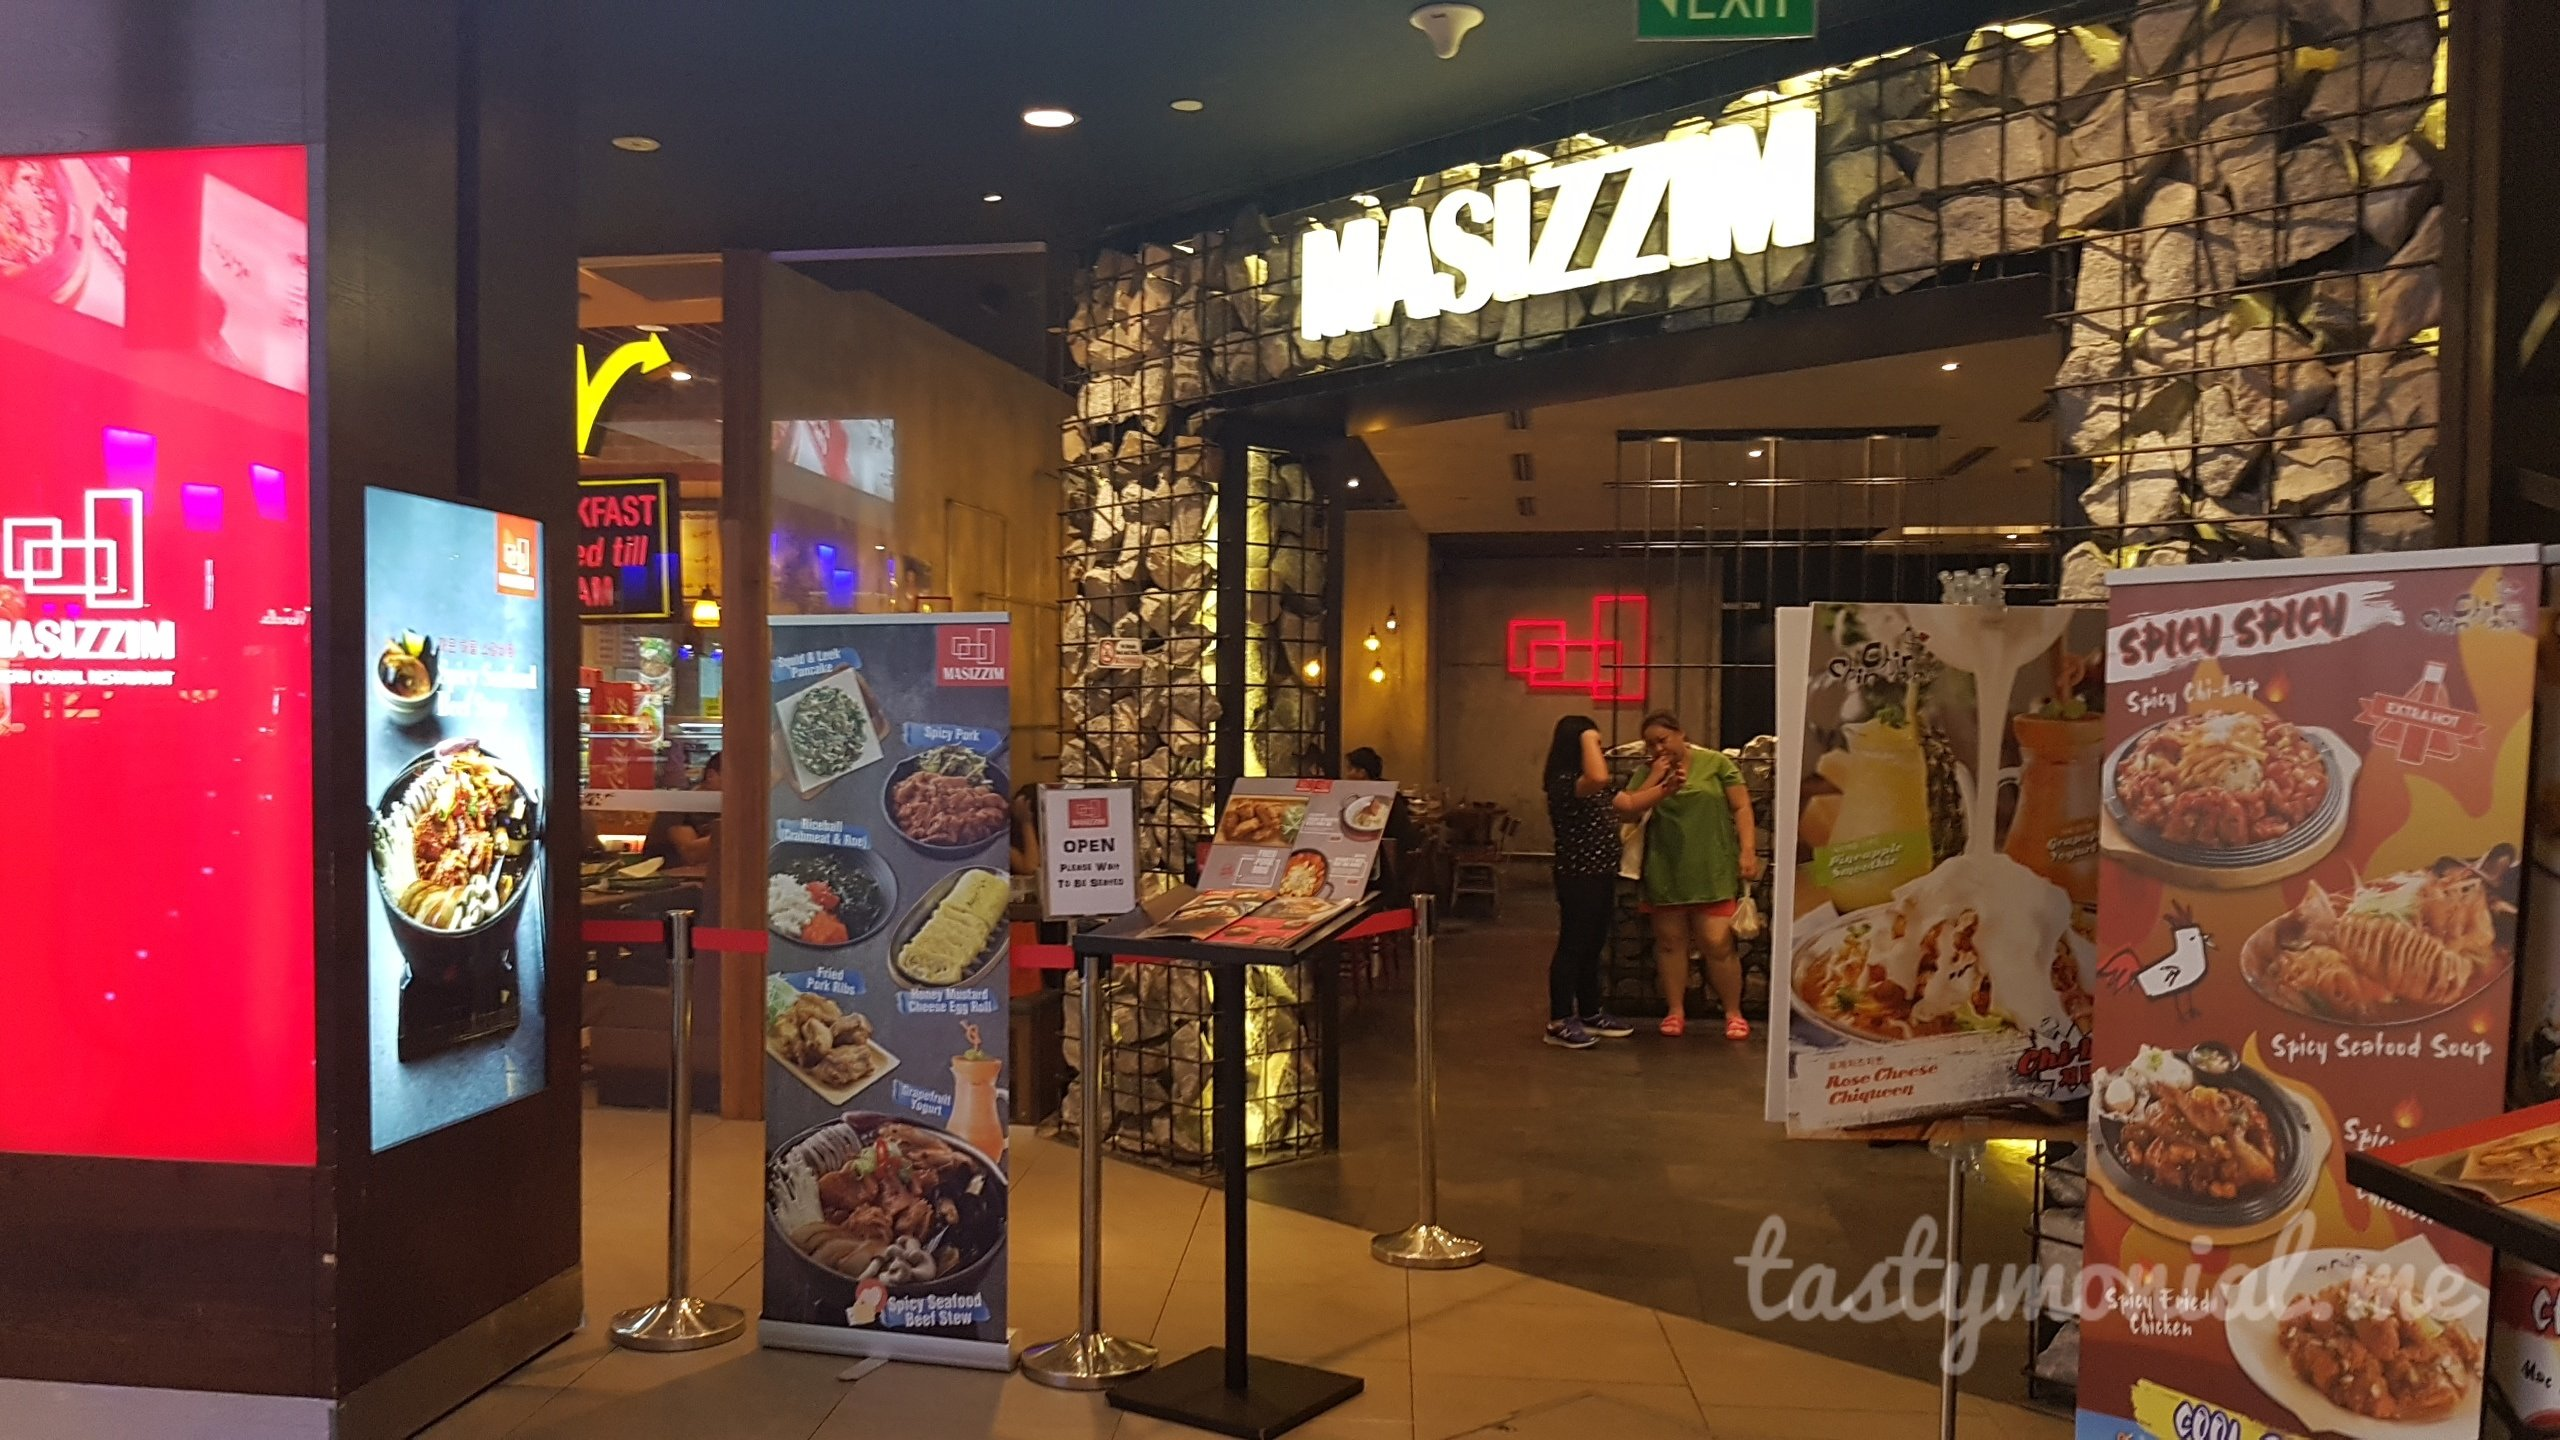 Masizzim Singapore – Korean food restaurant